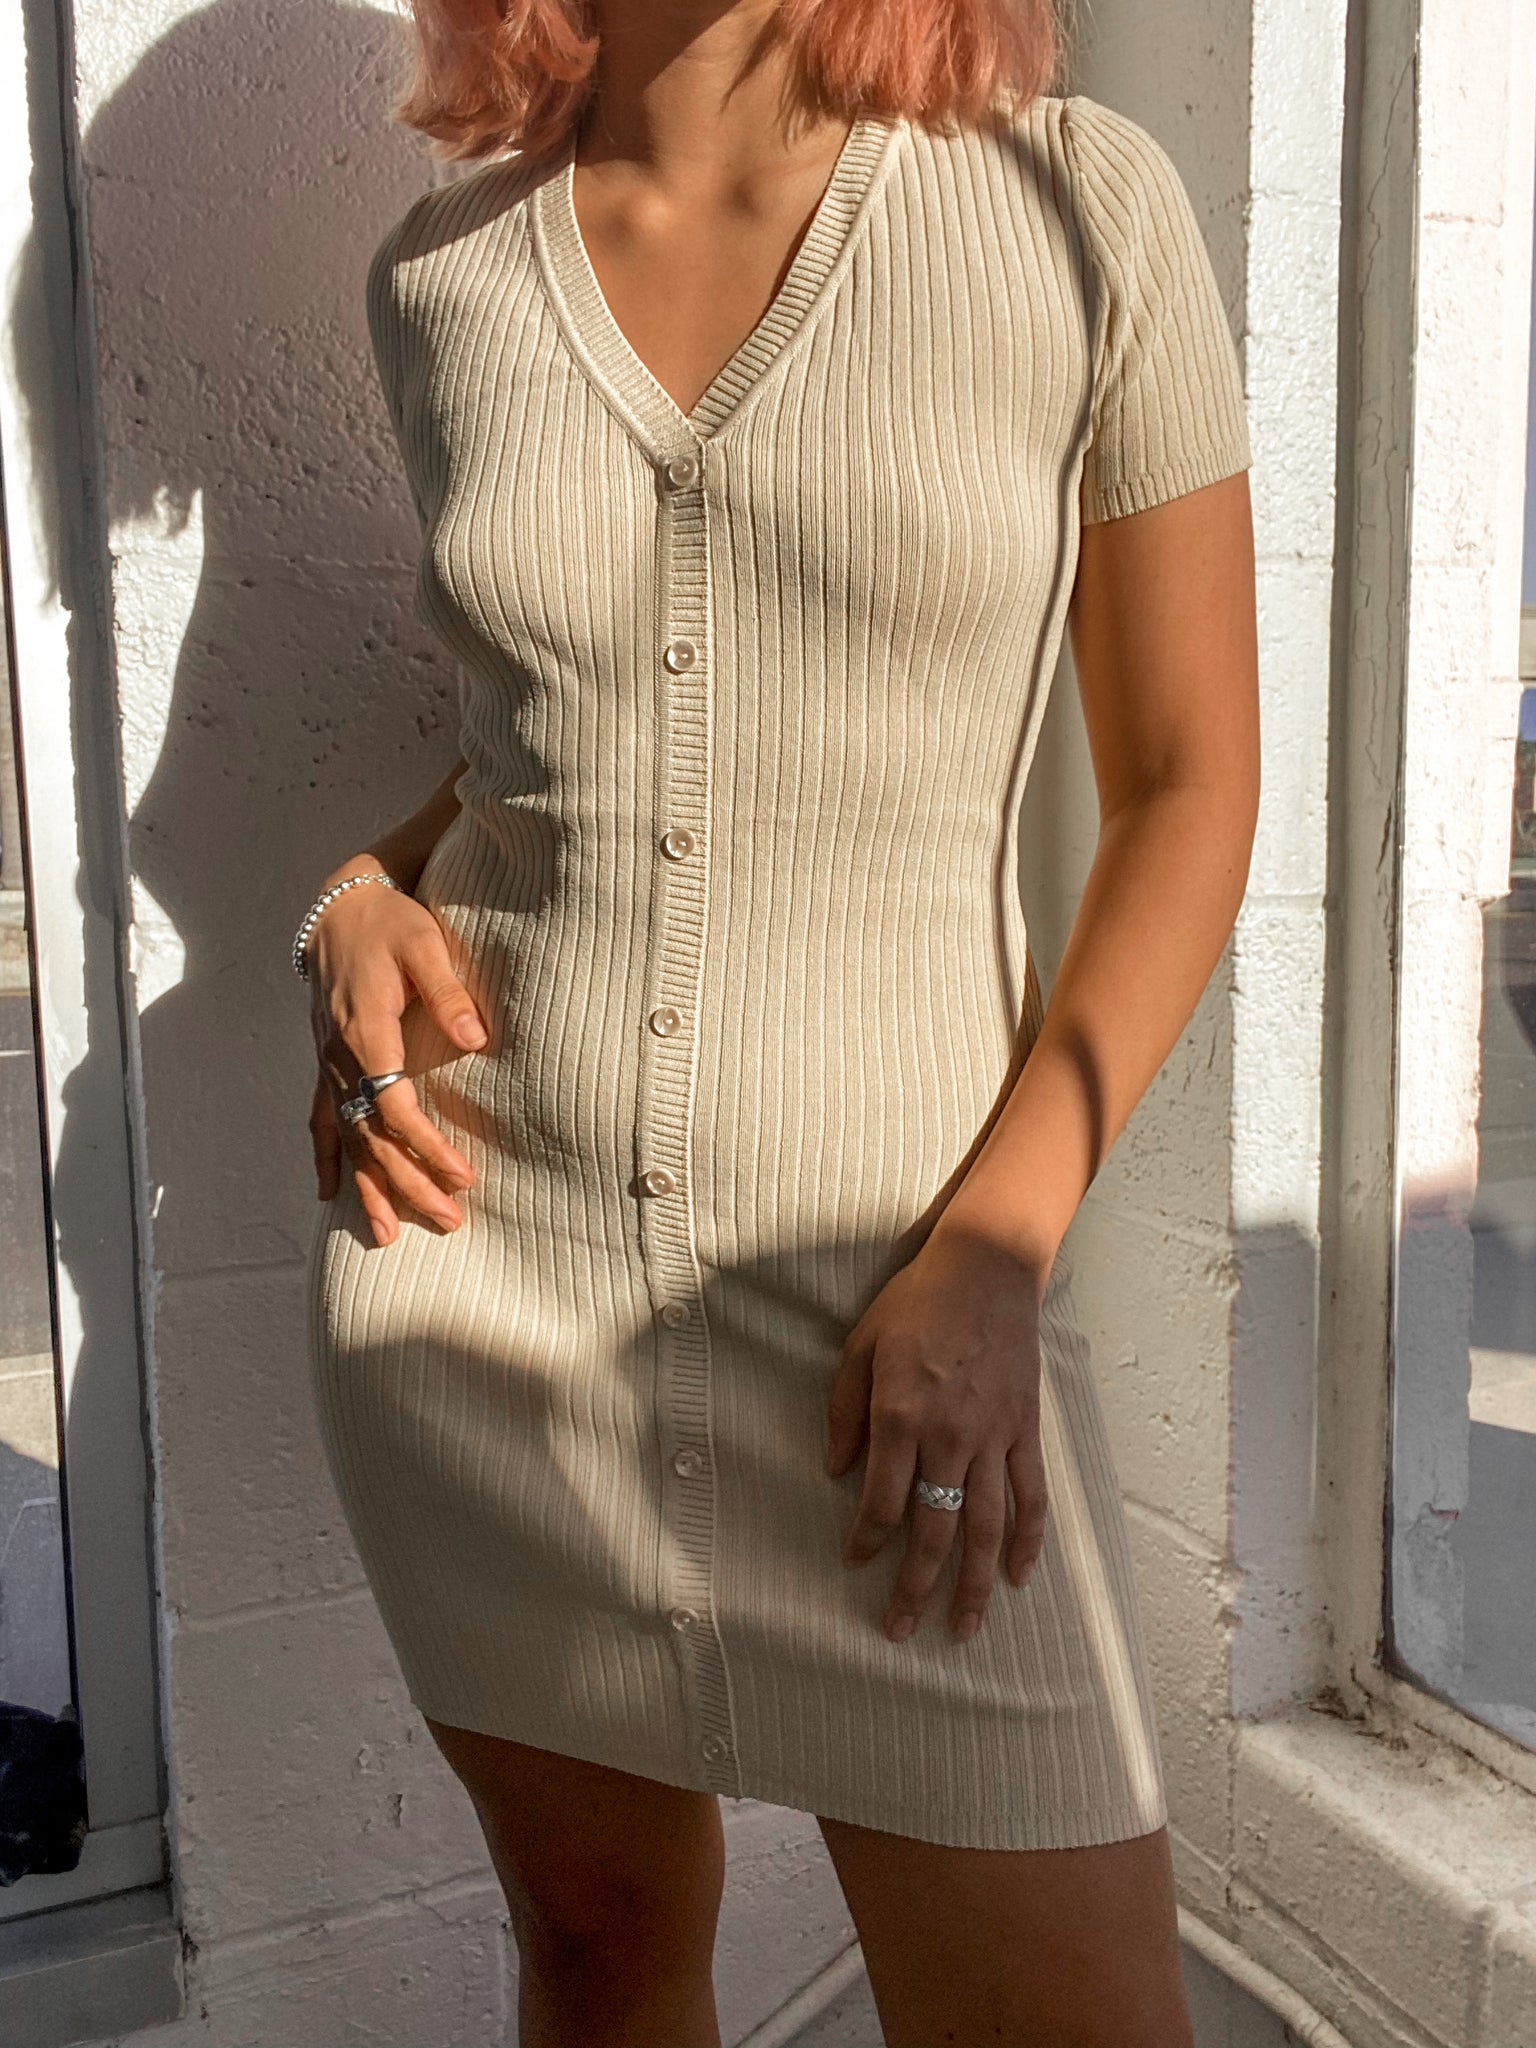 LOS ANGELES AFTERNOON RIBBED DRESS